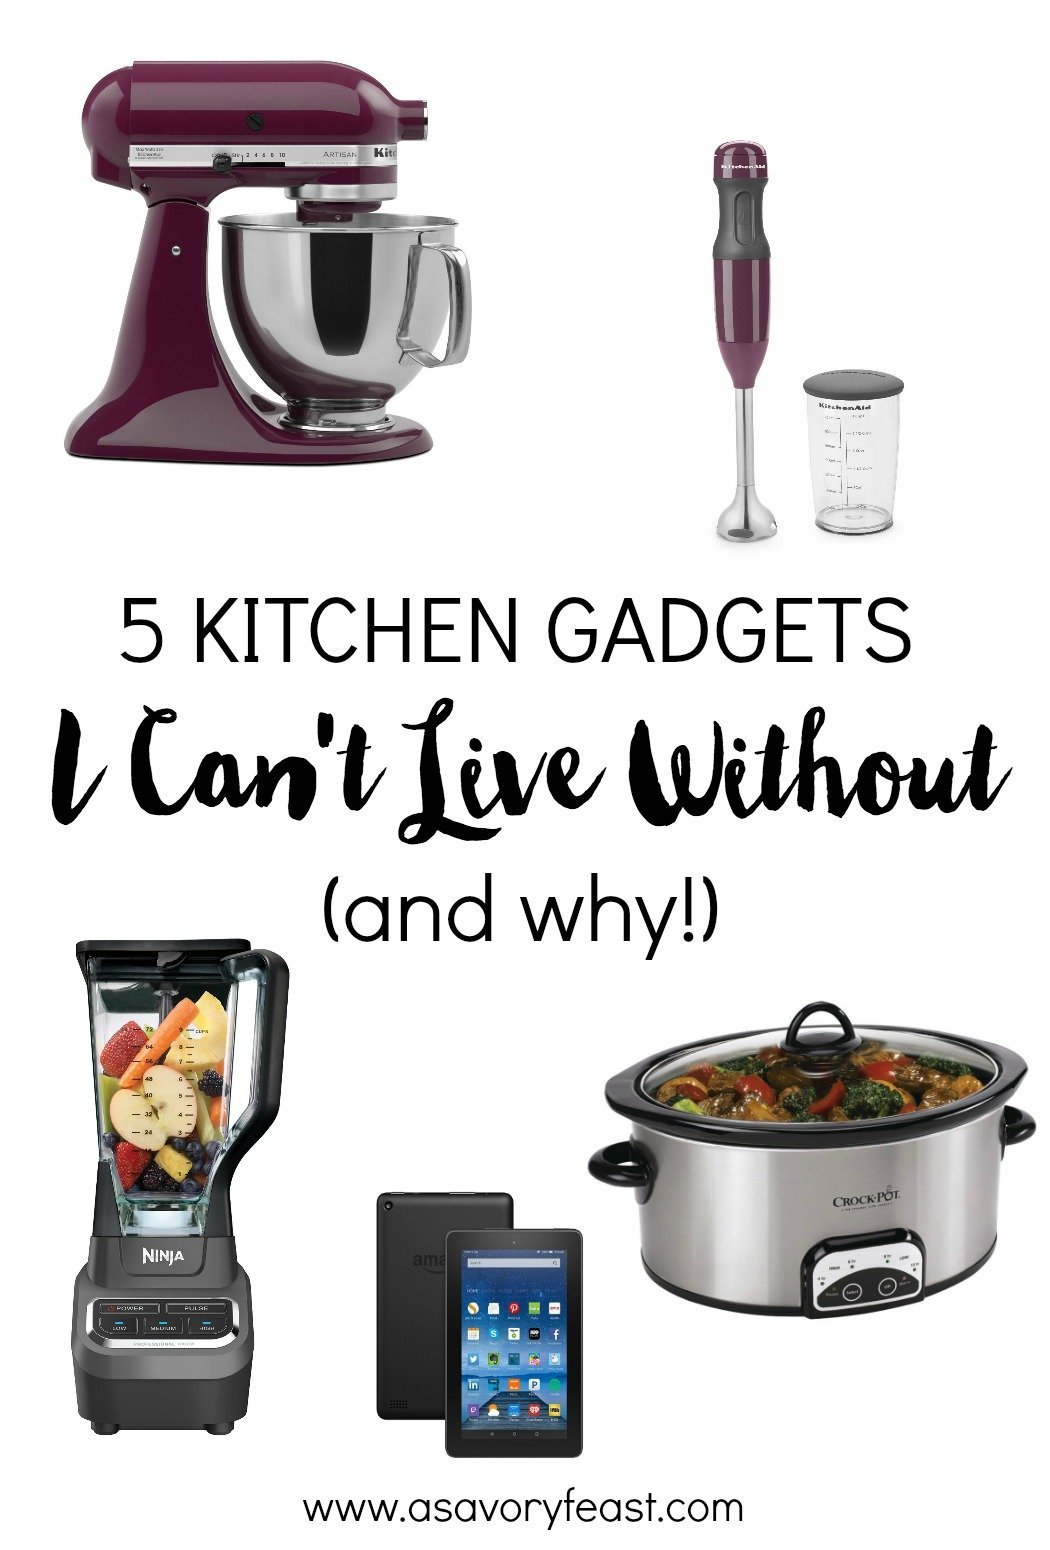 5 Kitchen Gadgets I Can't Live Without (and why!)